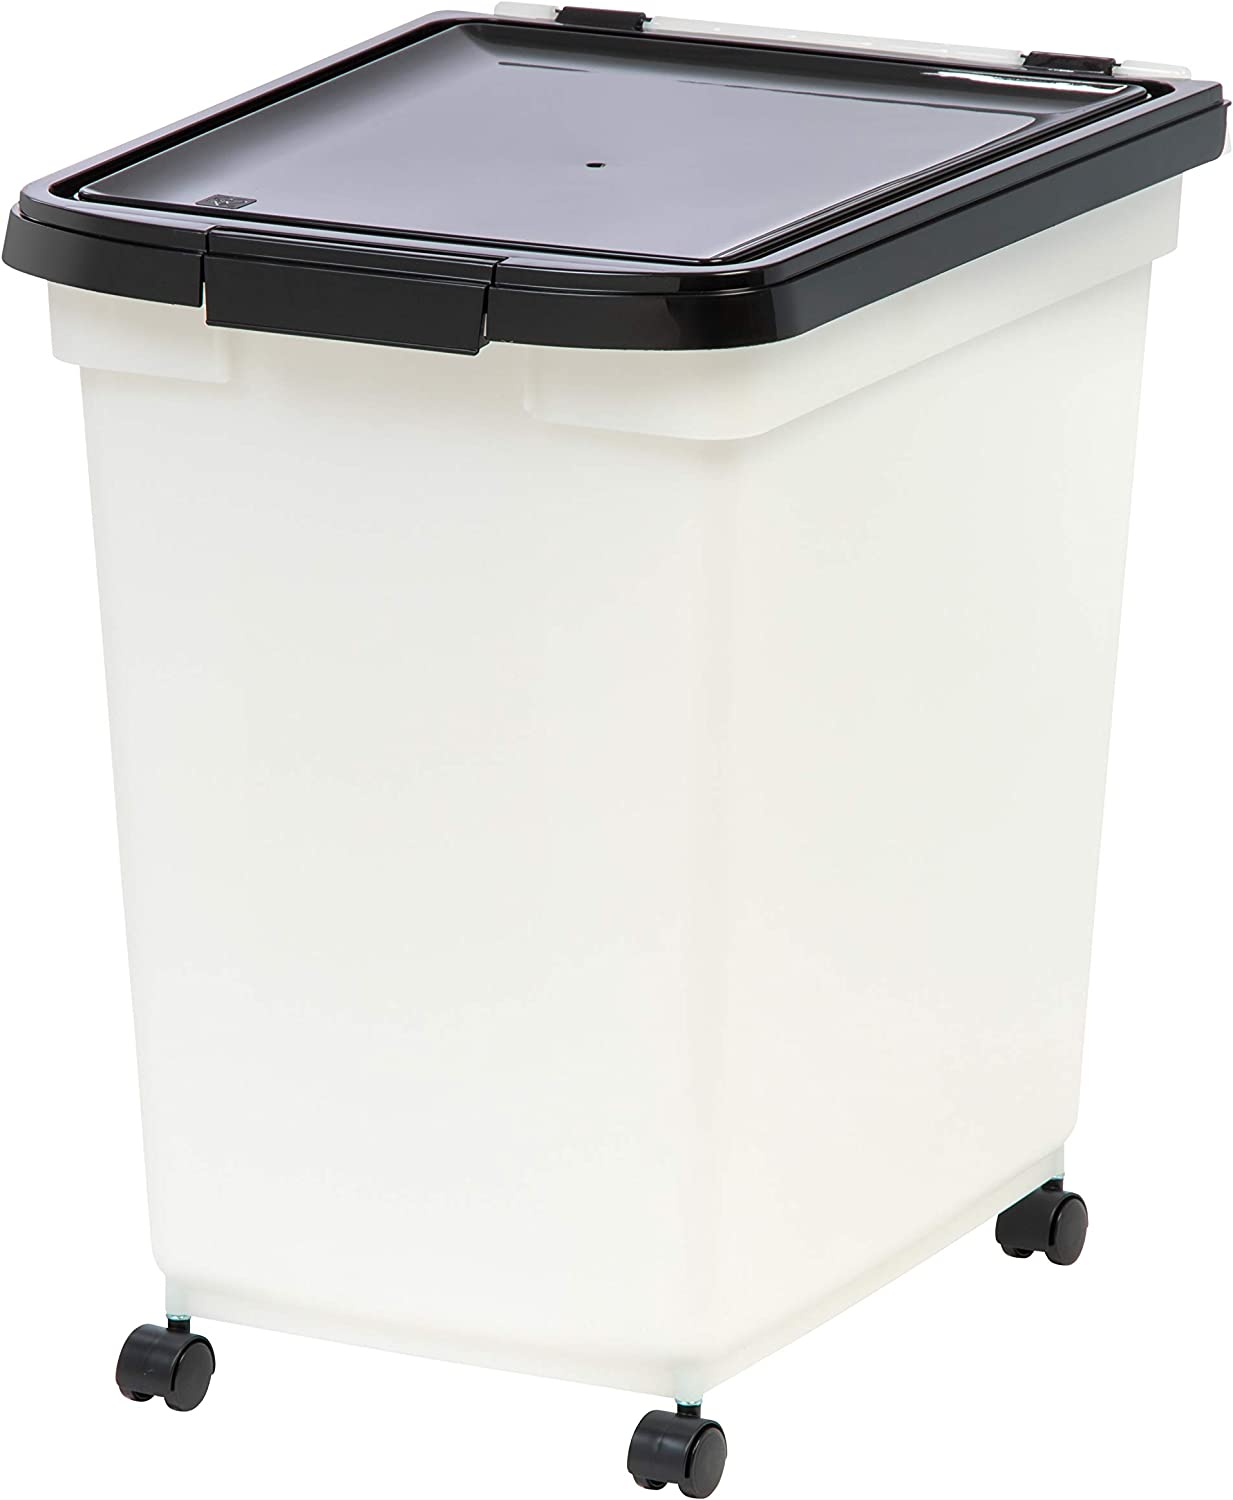 IRIS 65 quart Airtight Pet Food Container, Black